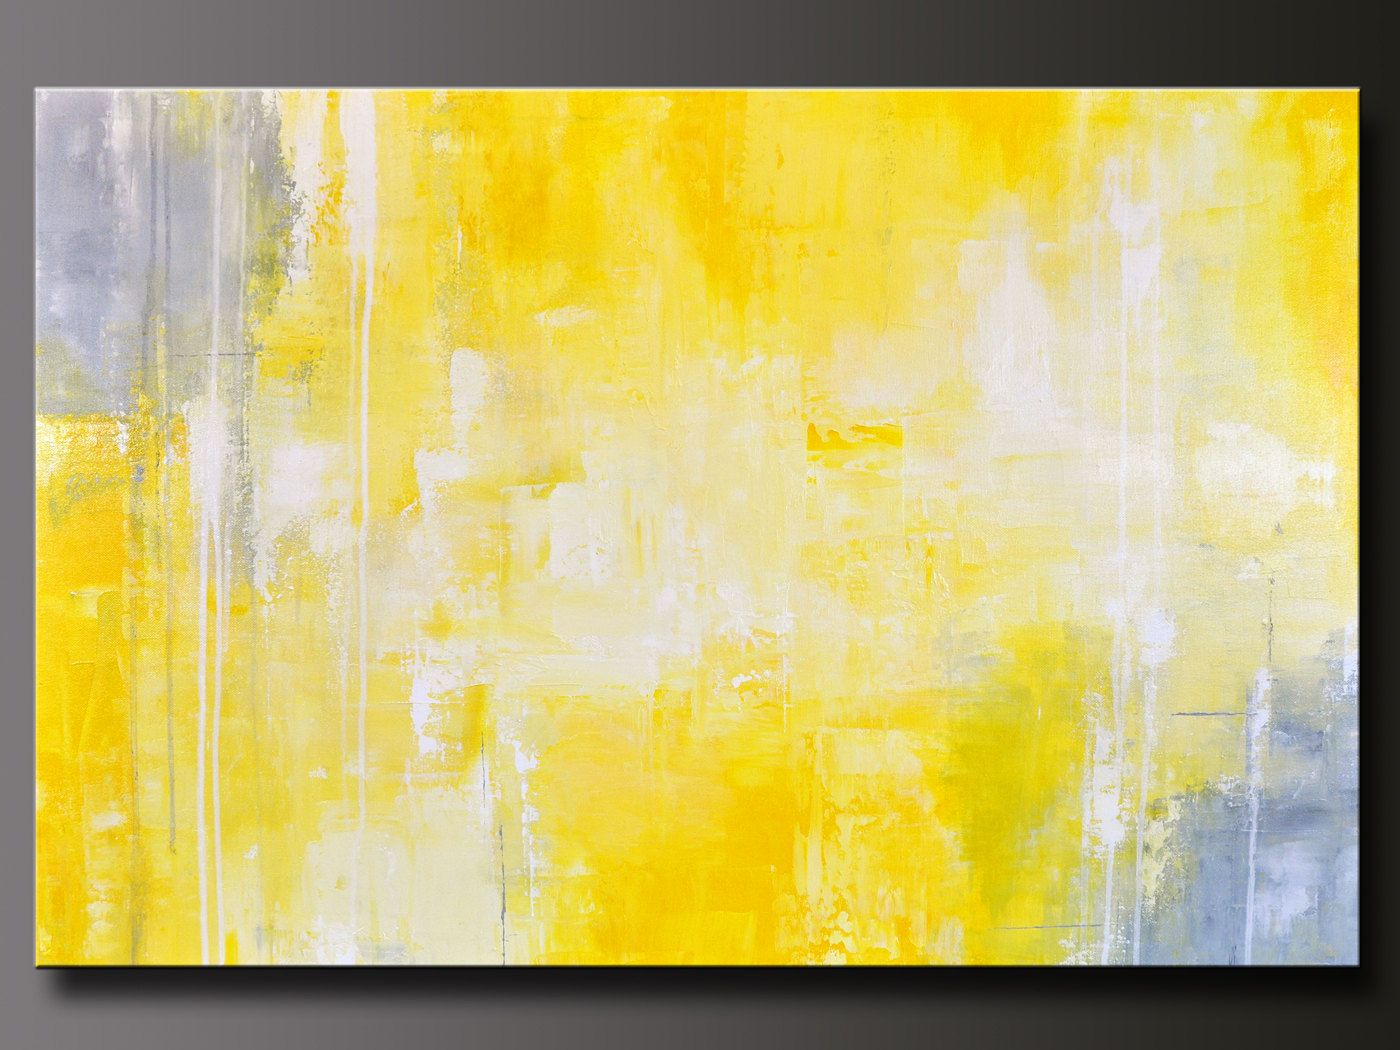 Yellow And Grey Wall Art abstract in yellow 13 - abstract acrylic painting - contemporary